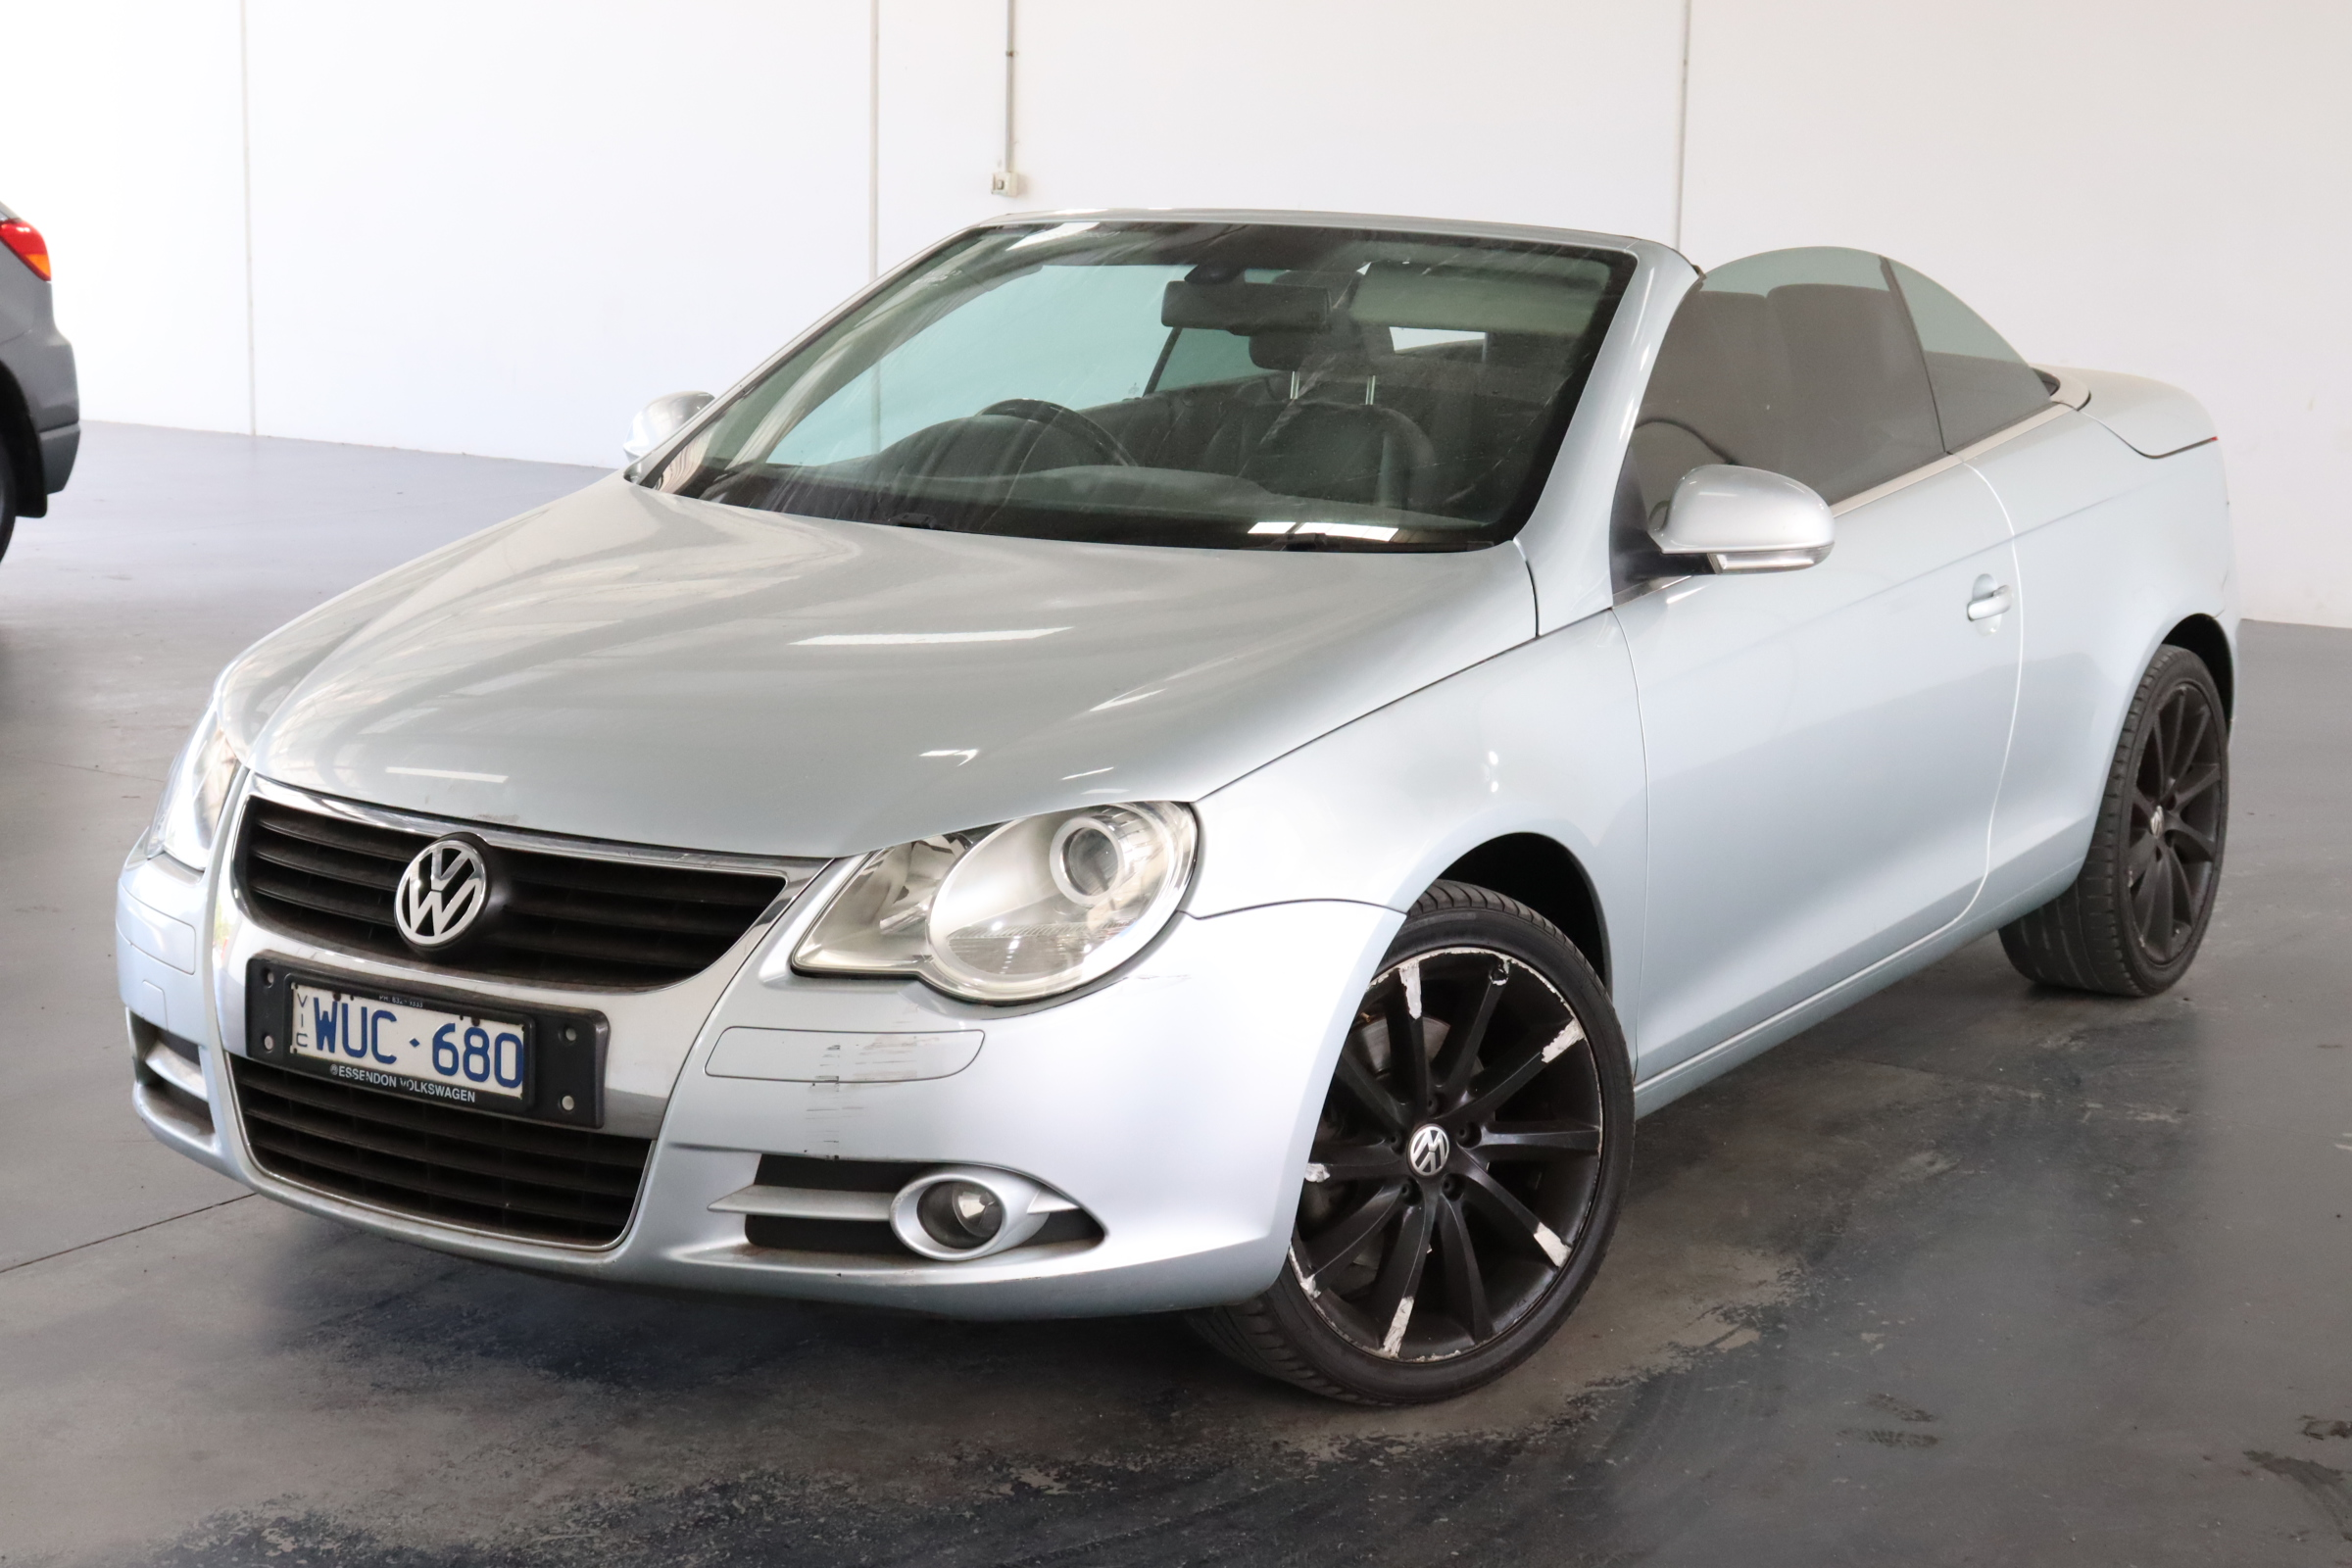 2007 Volkswagen Eos 2.0 TDI 1F Turbo Diesel Automatic Convertible